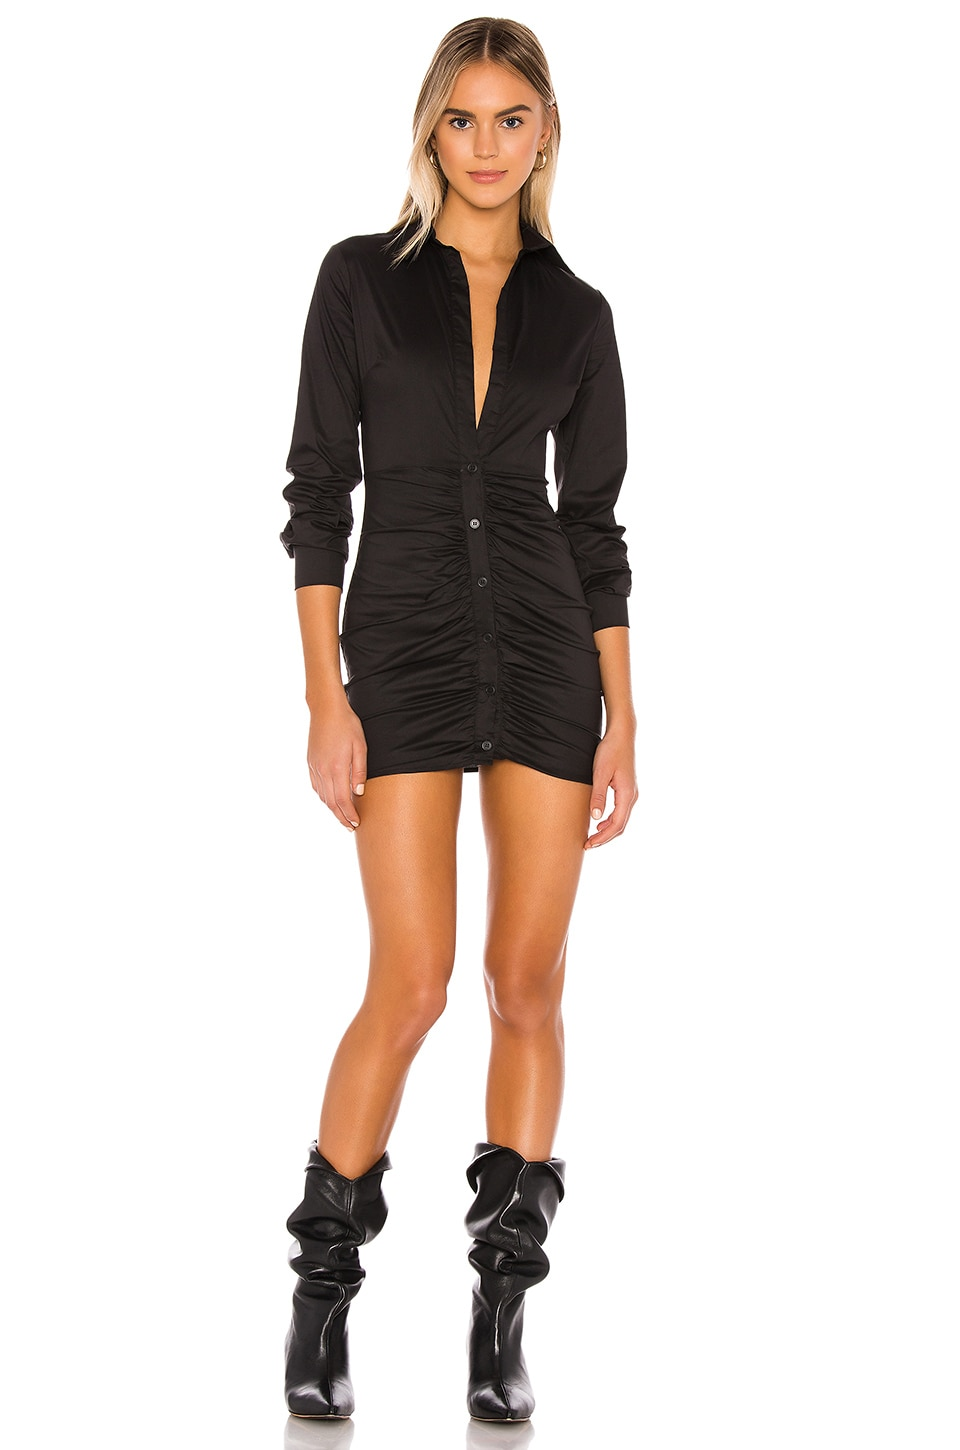 Colette Ruched Shirt Dress, view 1, click to view large image.